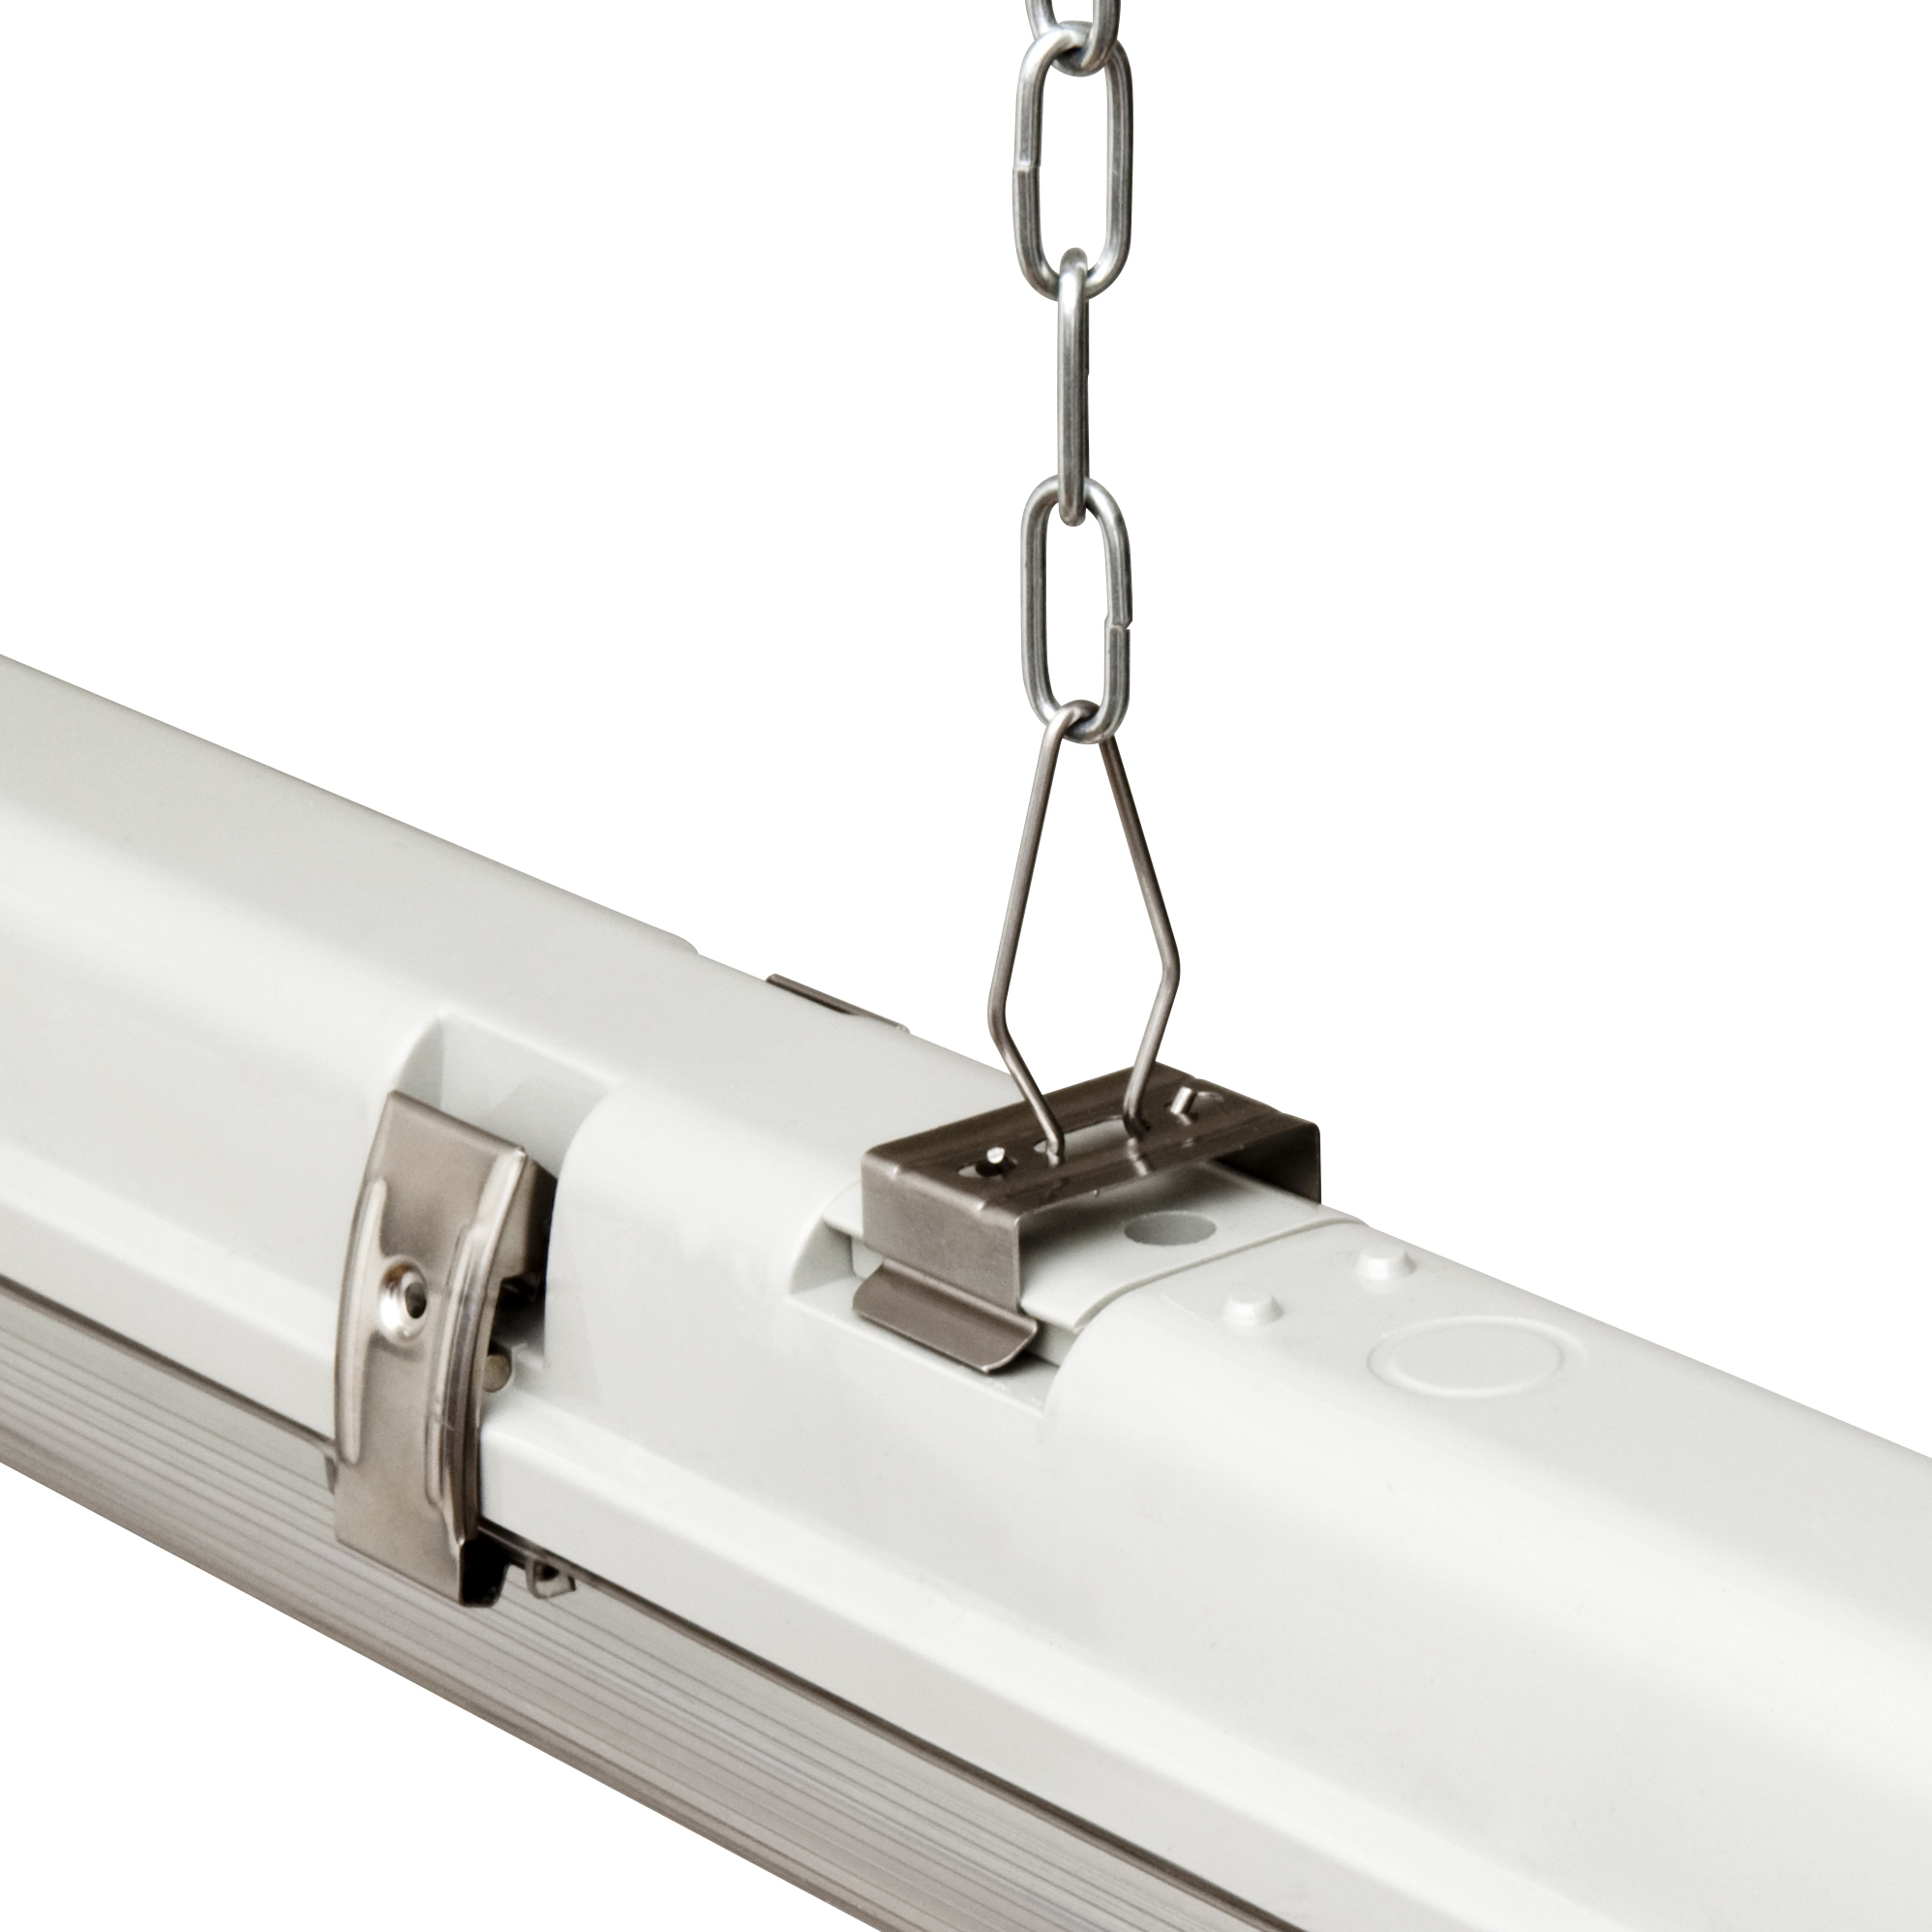 Verbatim LED Chain Suspension Kit – For Batten Luminaires